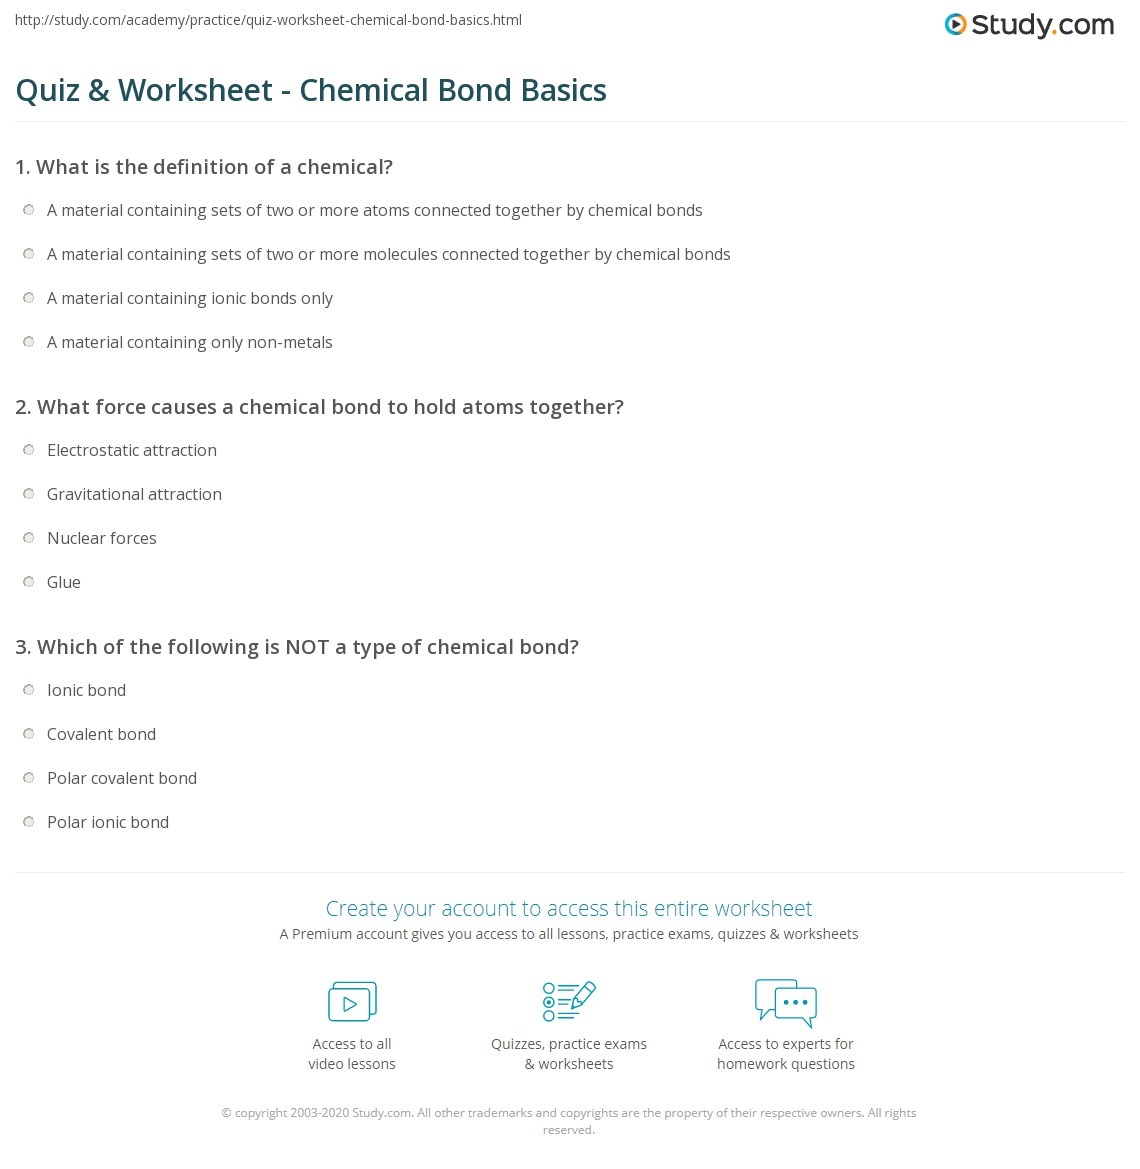 Quiz & Worksheet - Chemical Bond Basics | Study.com